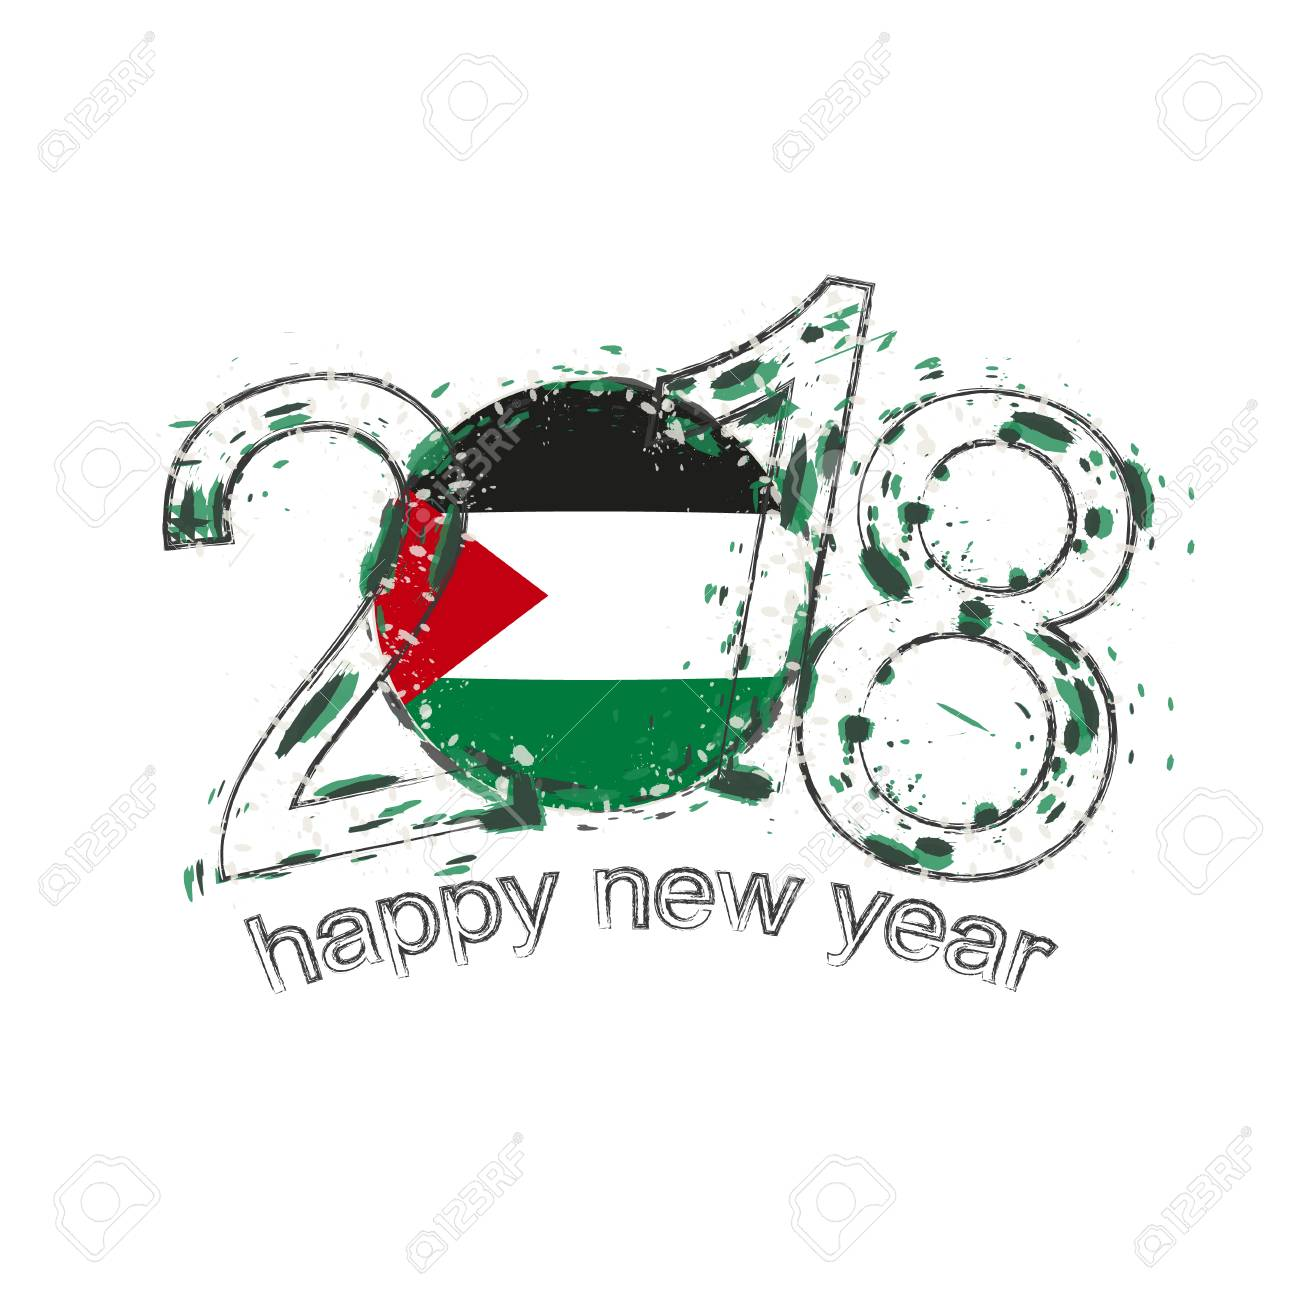 2018 happy new year palestine grunge vector template for greeting card calendars 2018 seasonal